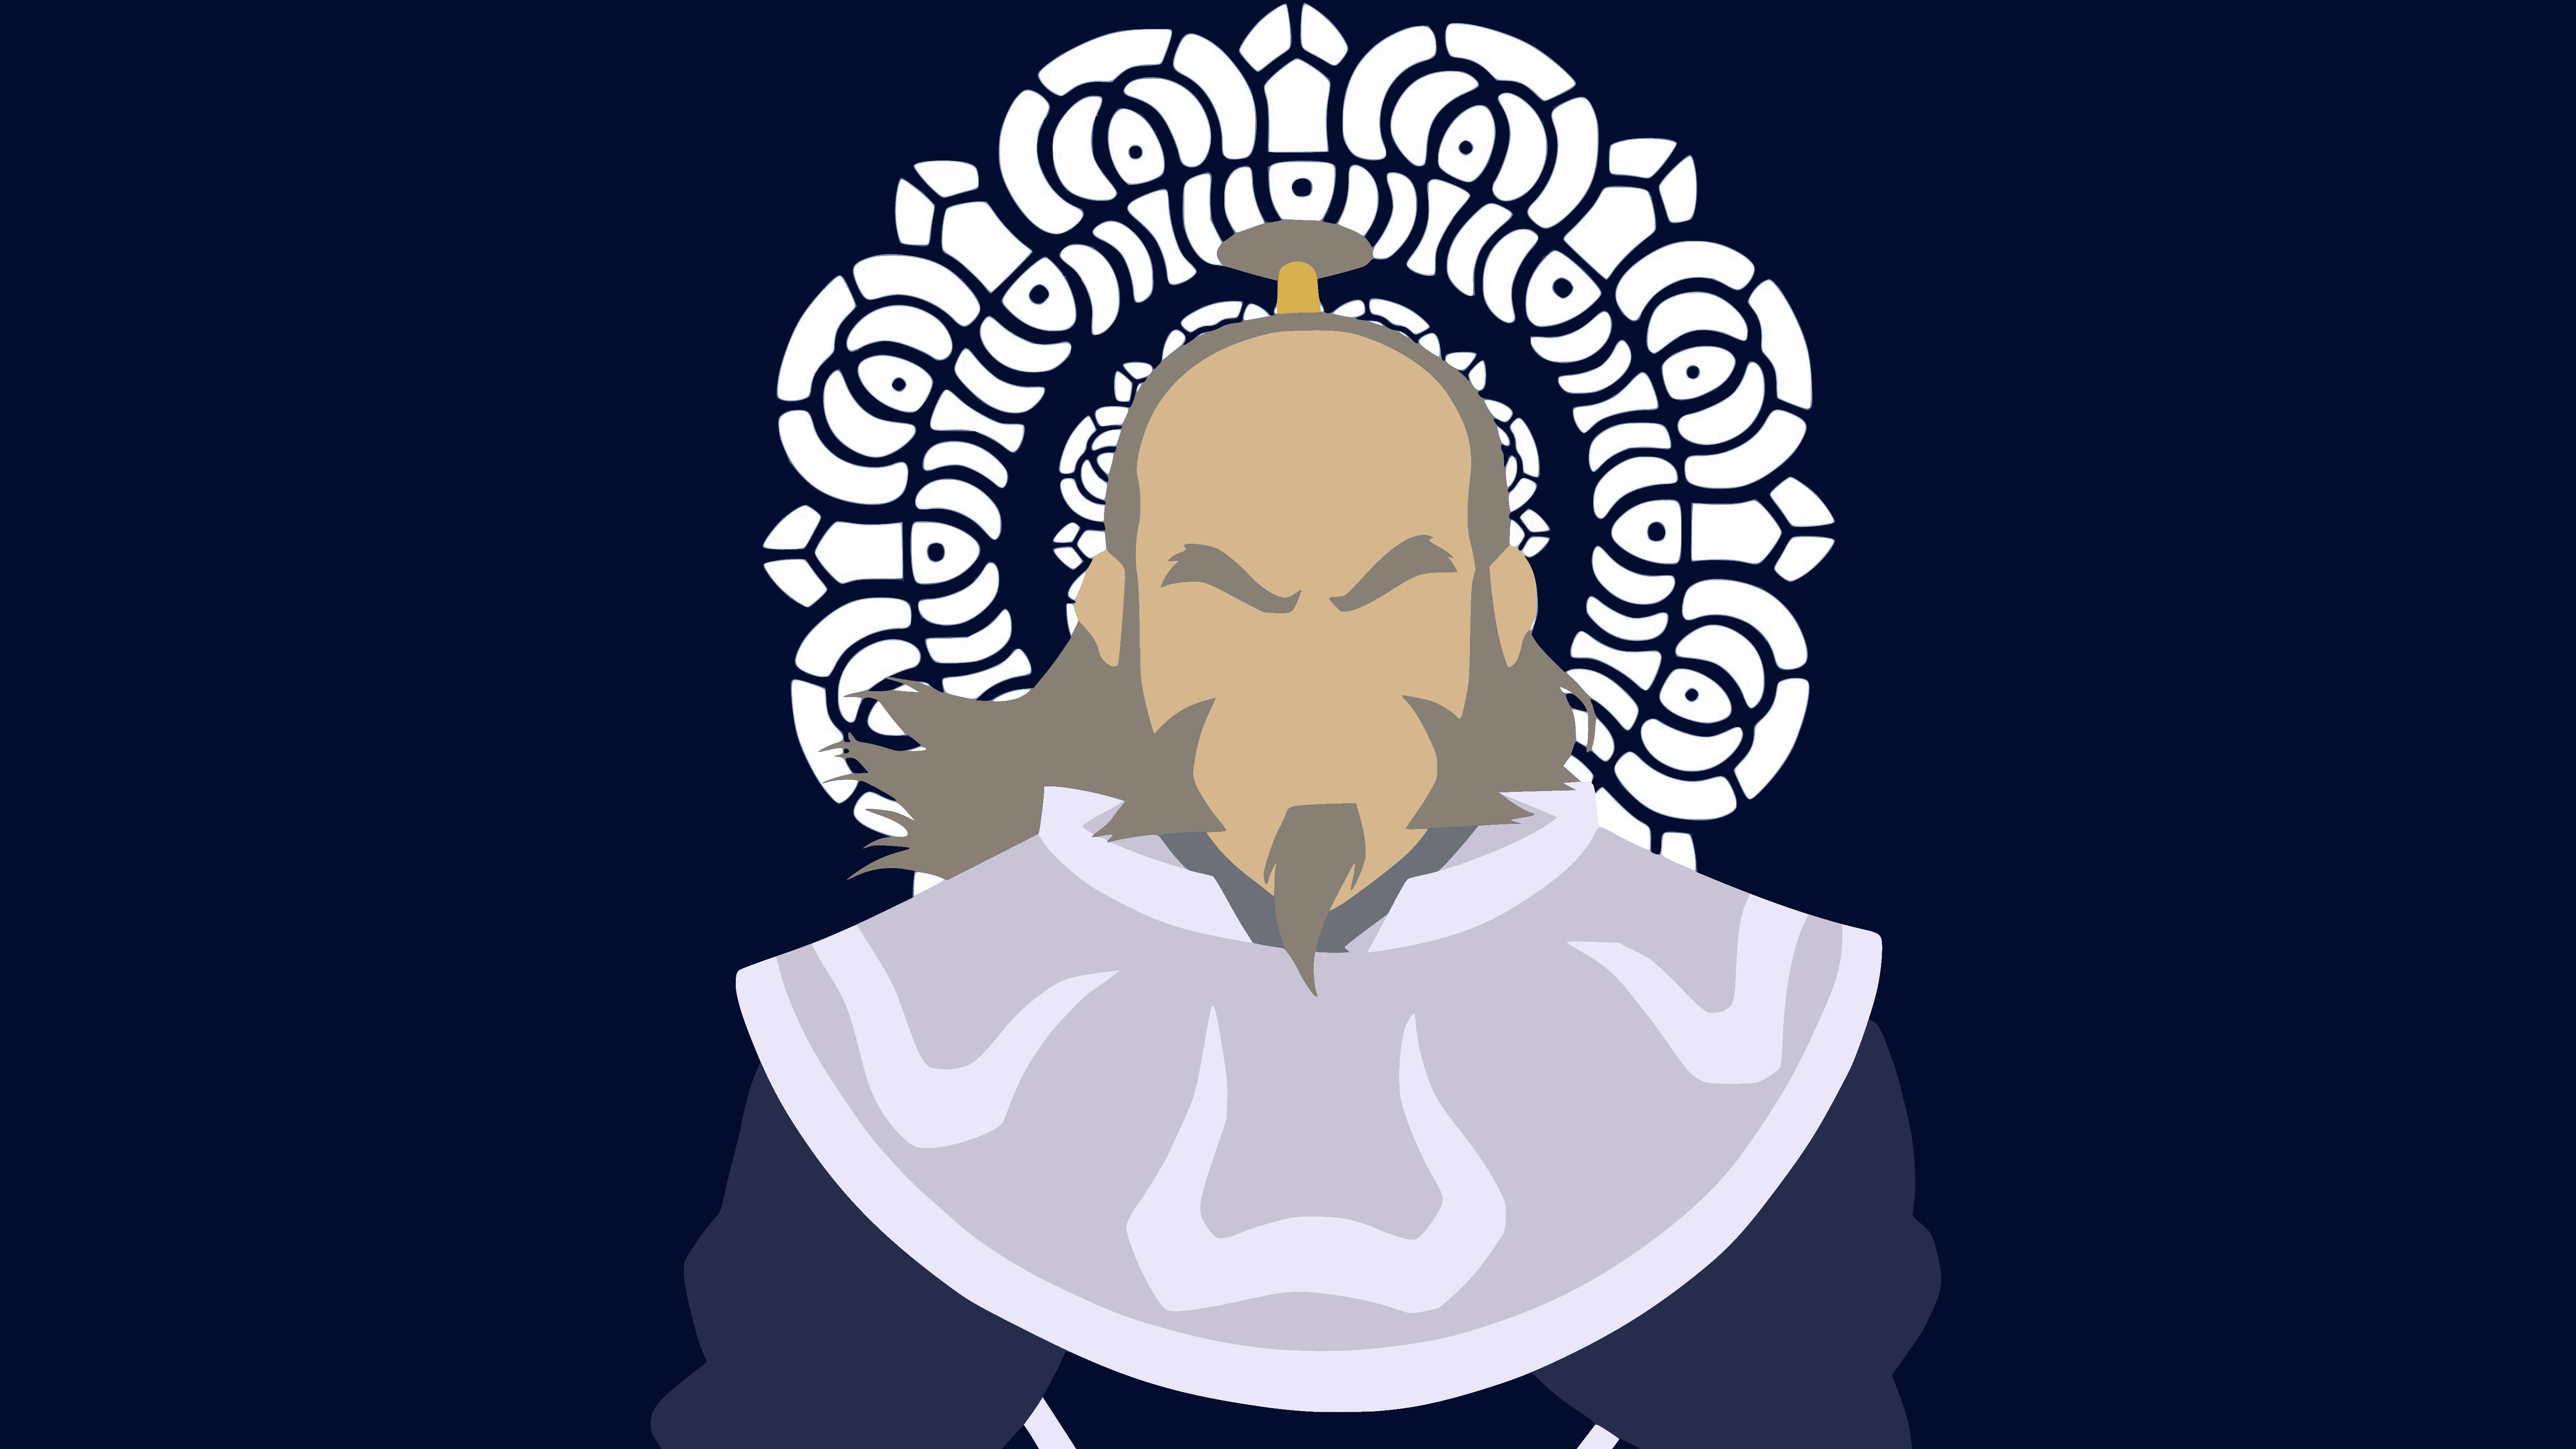 Iroh White Lotus Wallpaper By Damionmauville On Deviantart